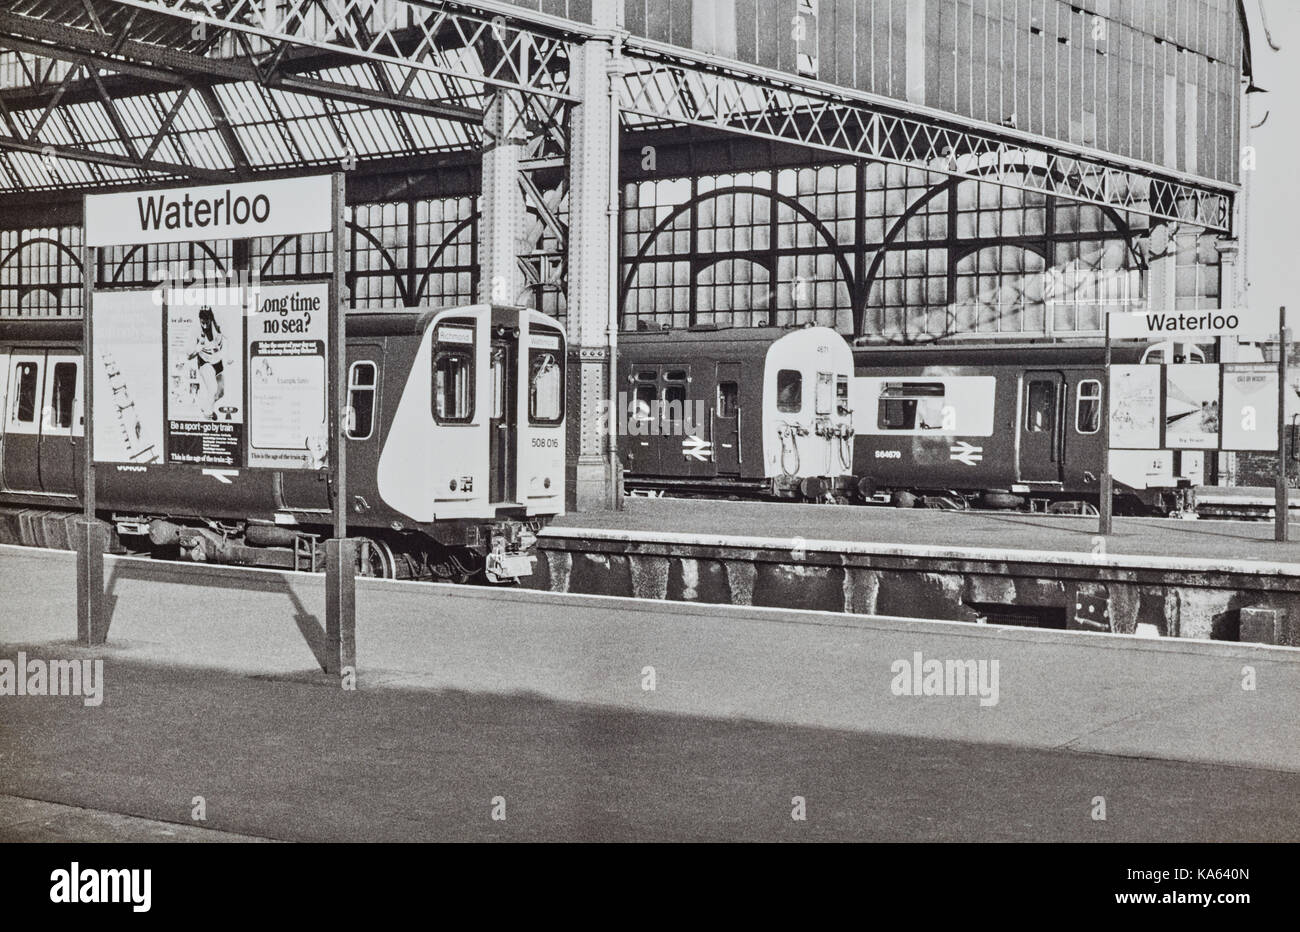 Trains at Waterloo station in 1980 - Stock Image